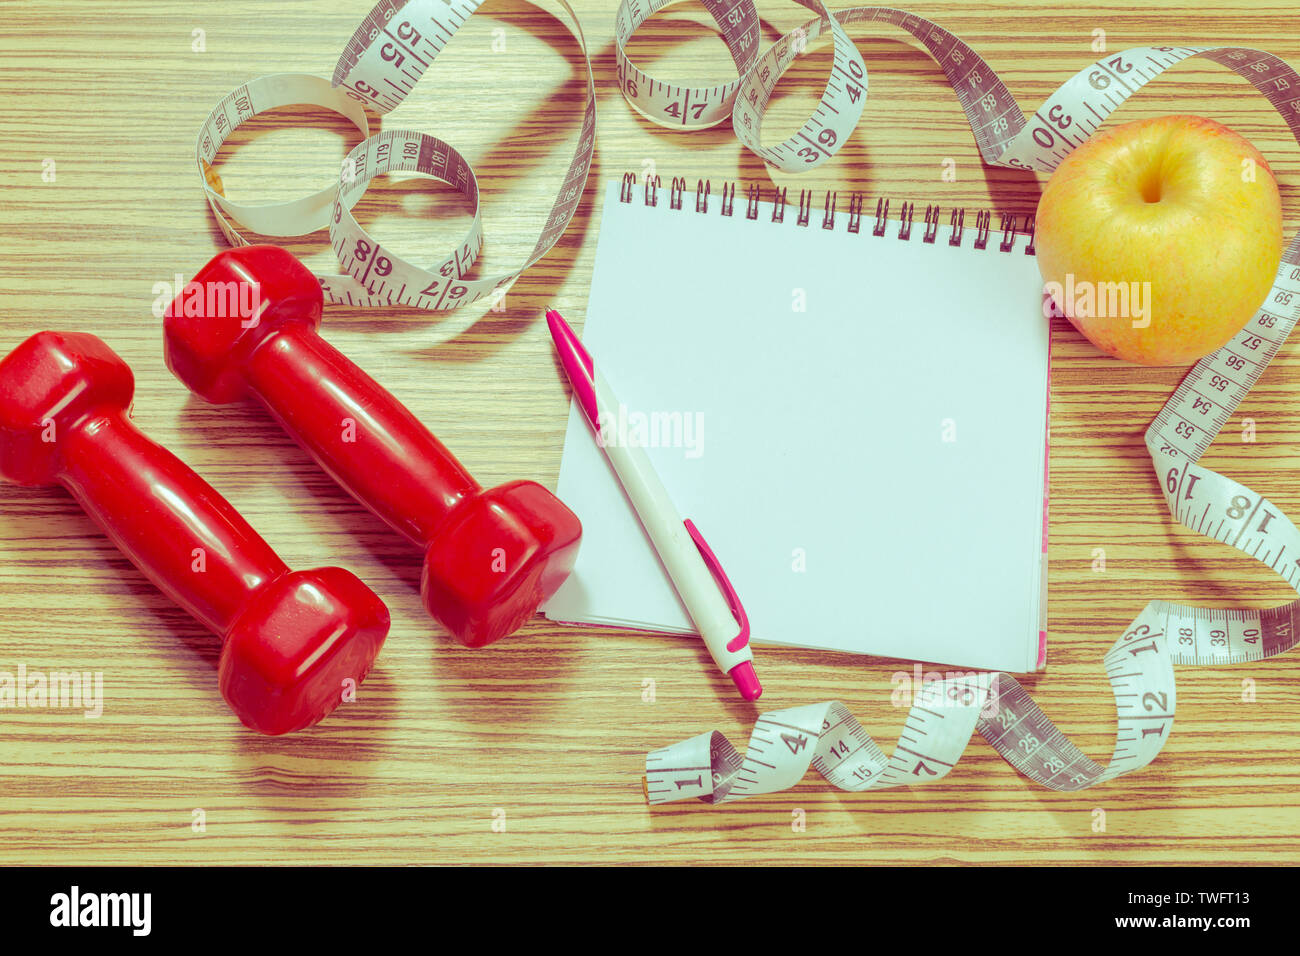 Workout plan and sports equipment - Stock Image